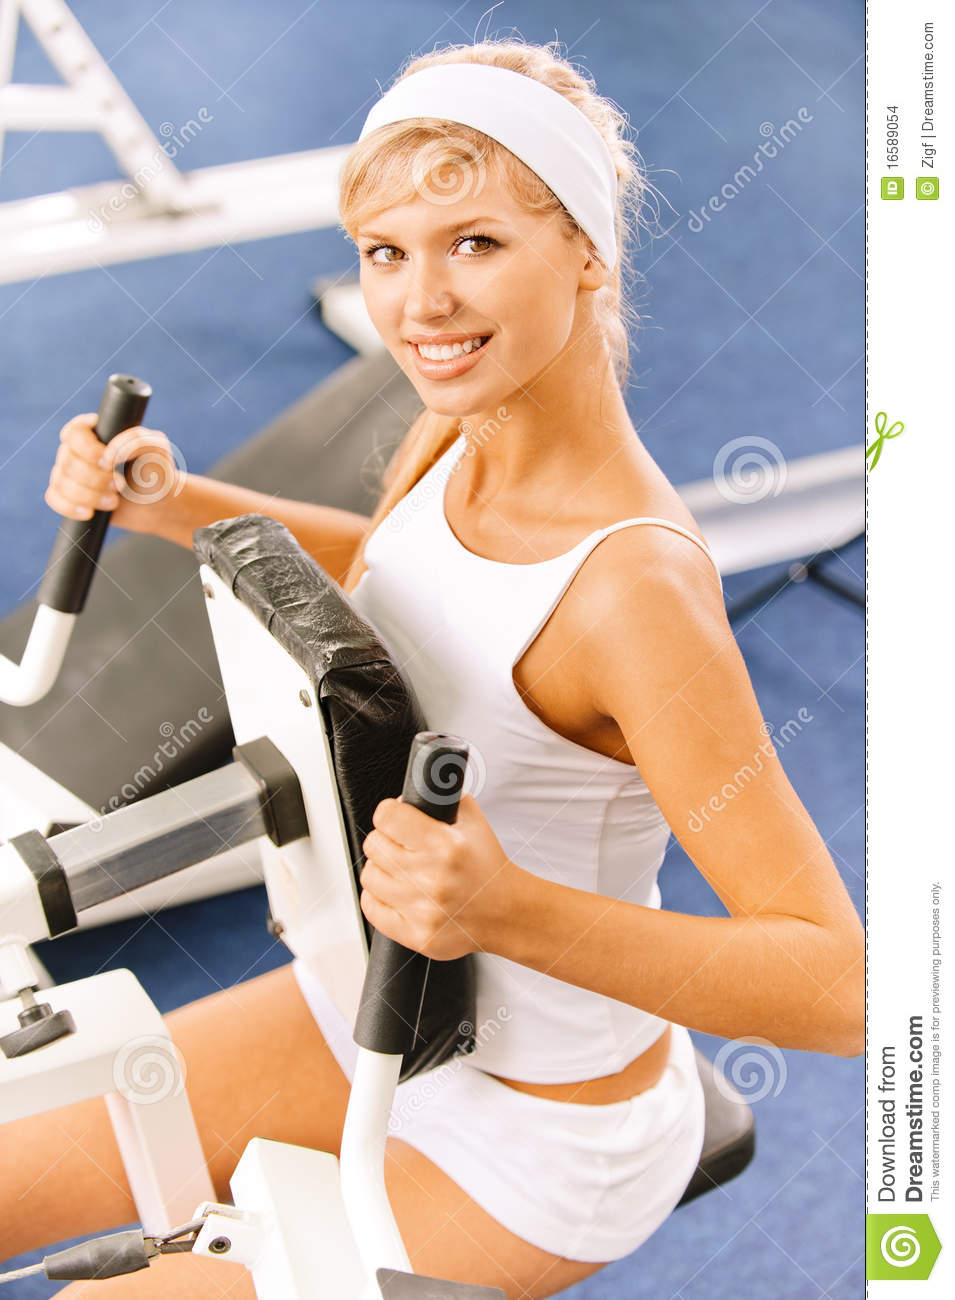 Girls Exercising In Gym Stock Images - Image: 16589054